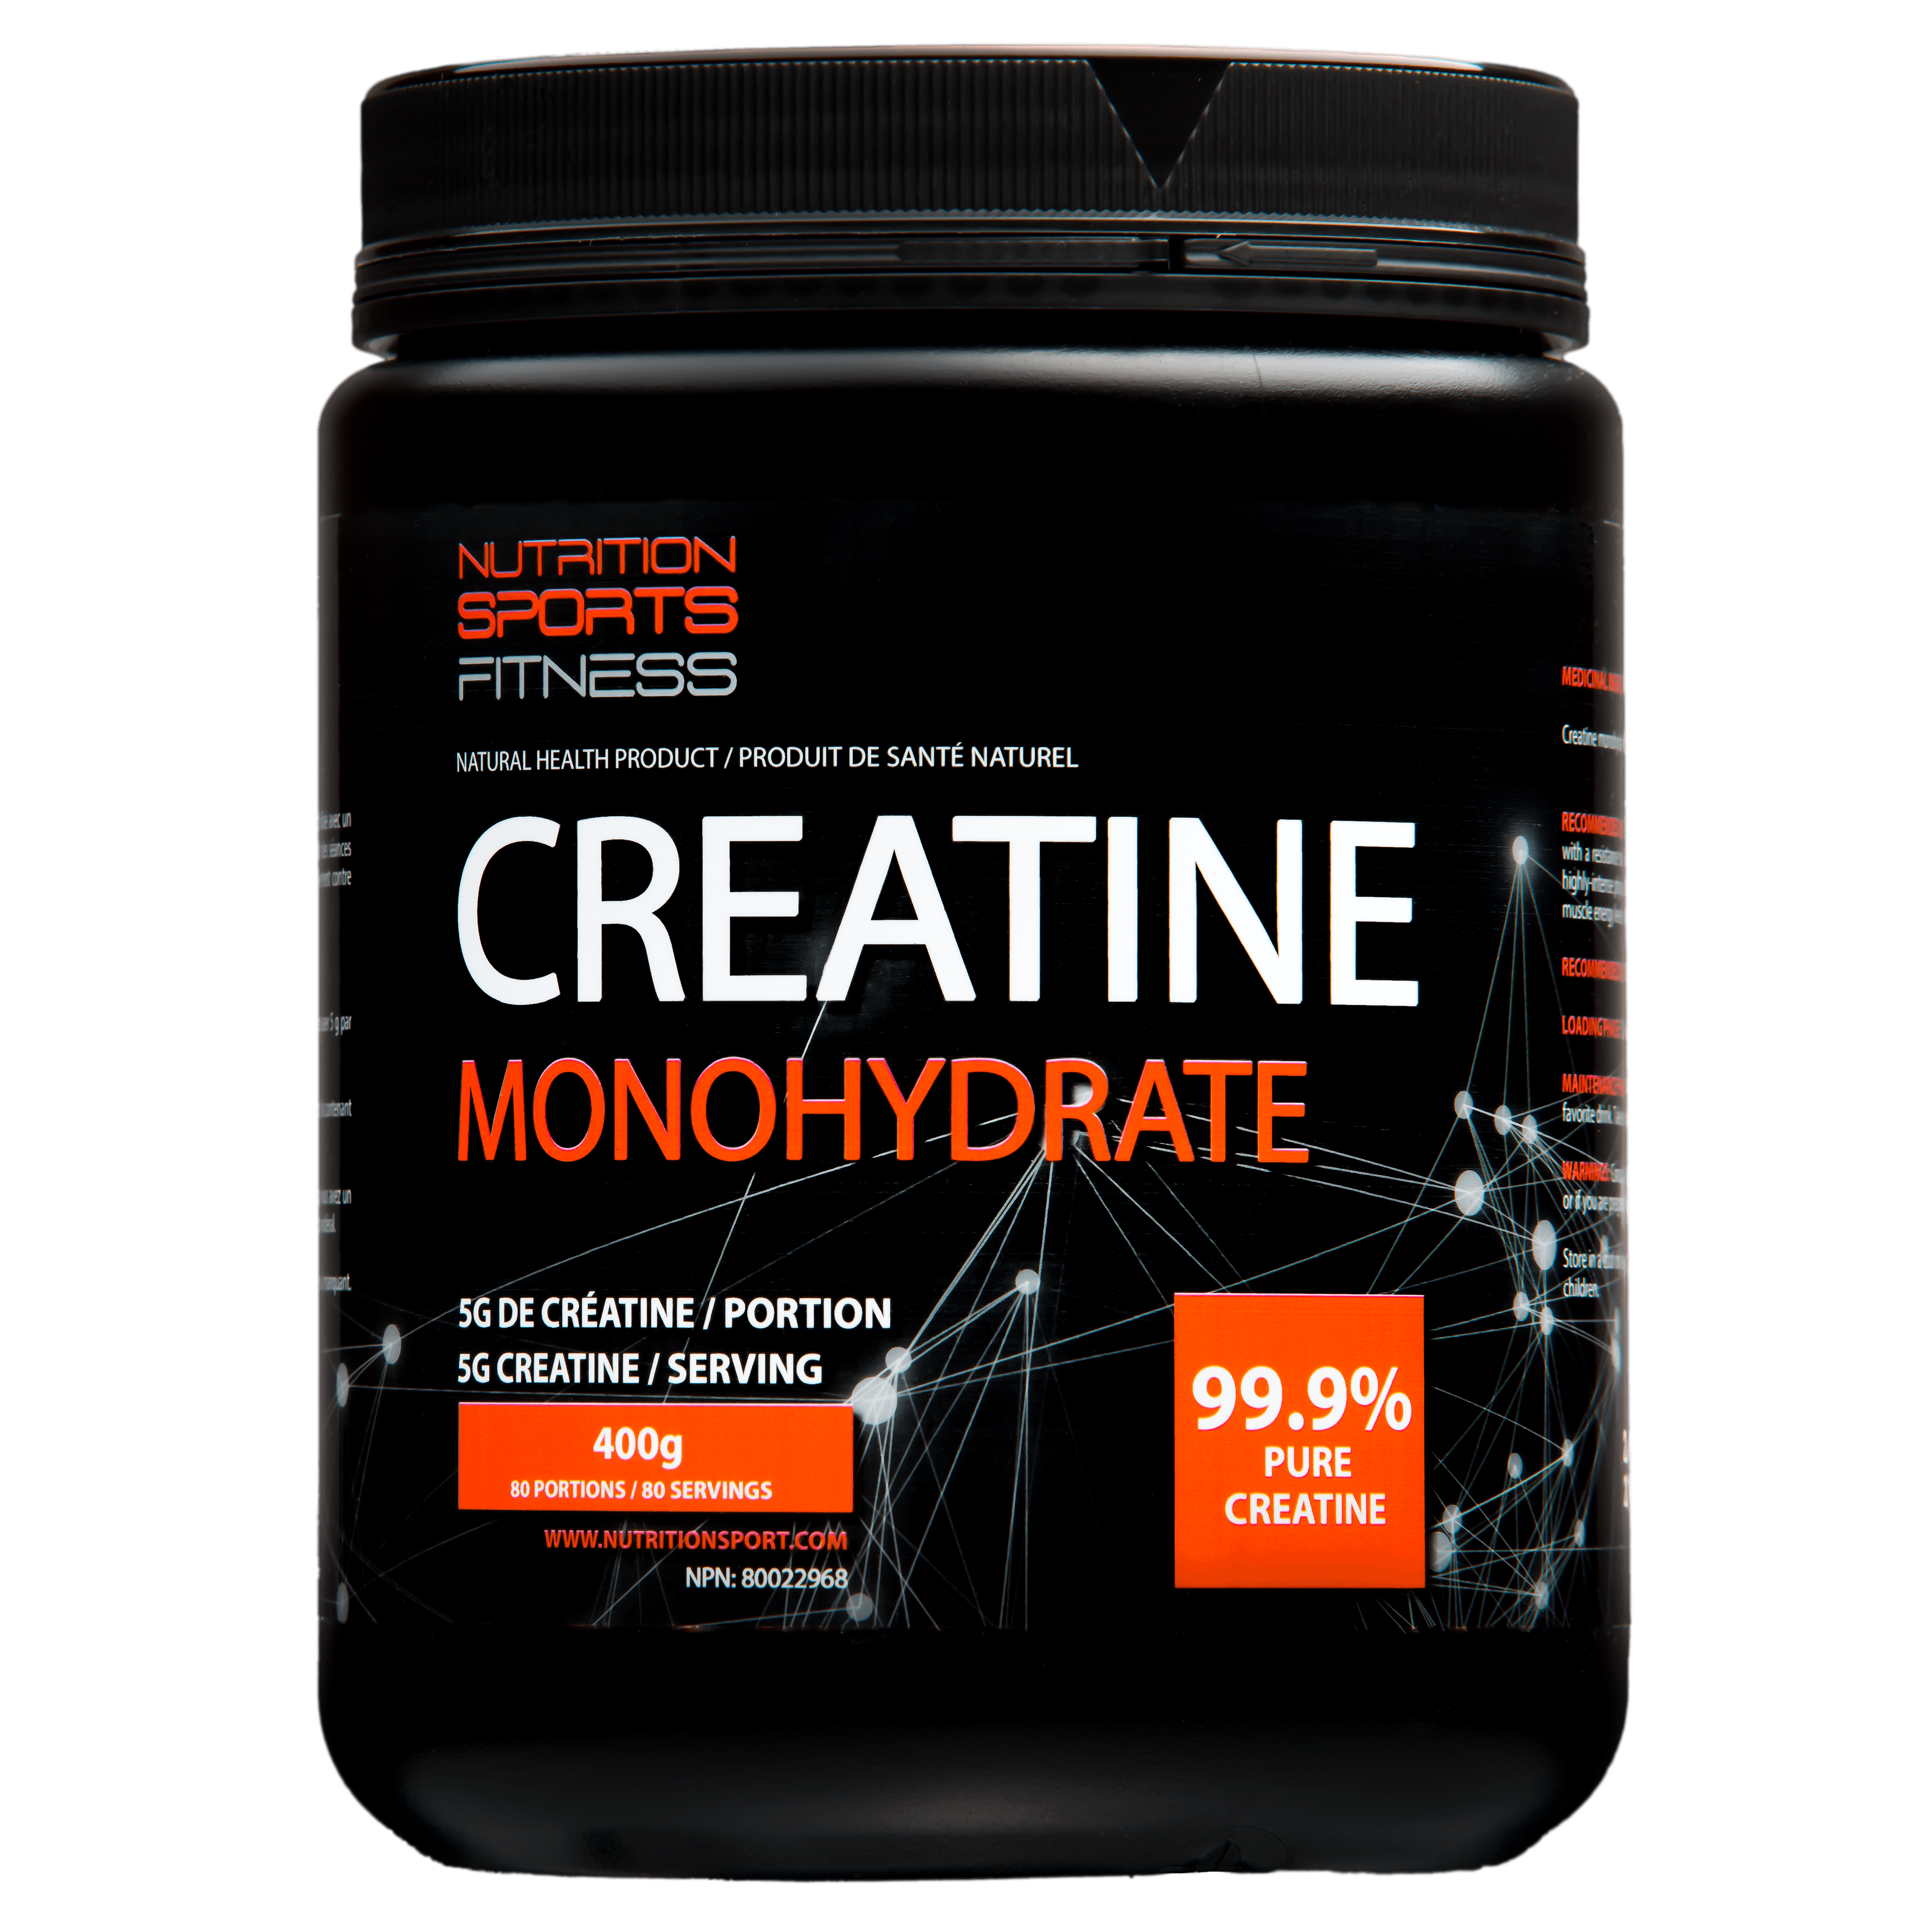 bsc creatine monohydrate 400g review